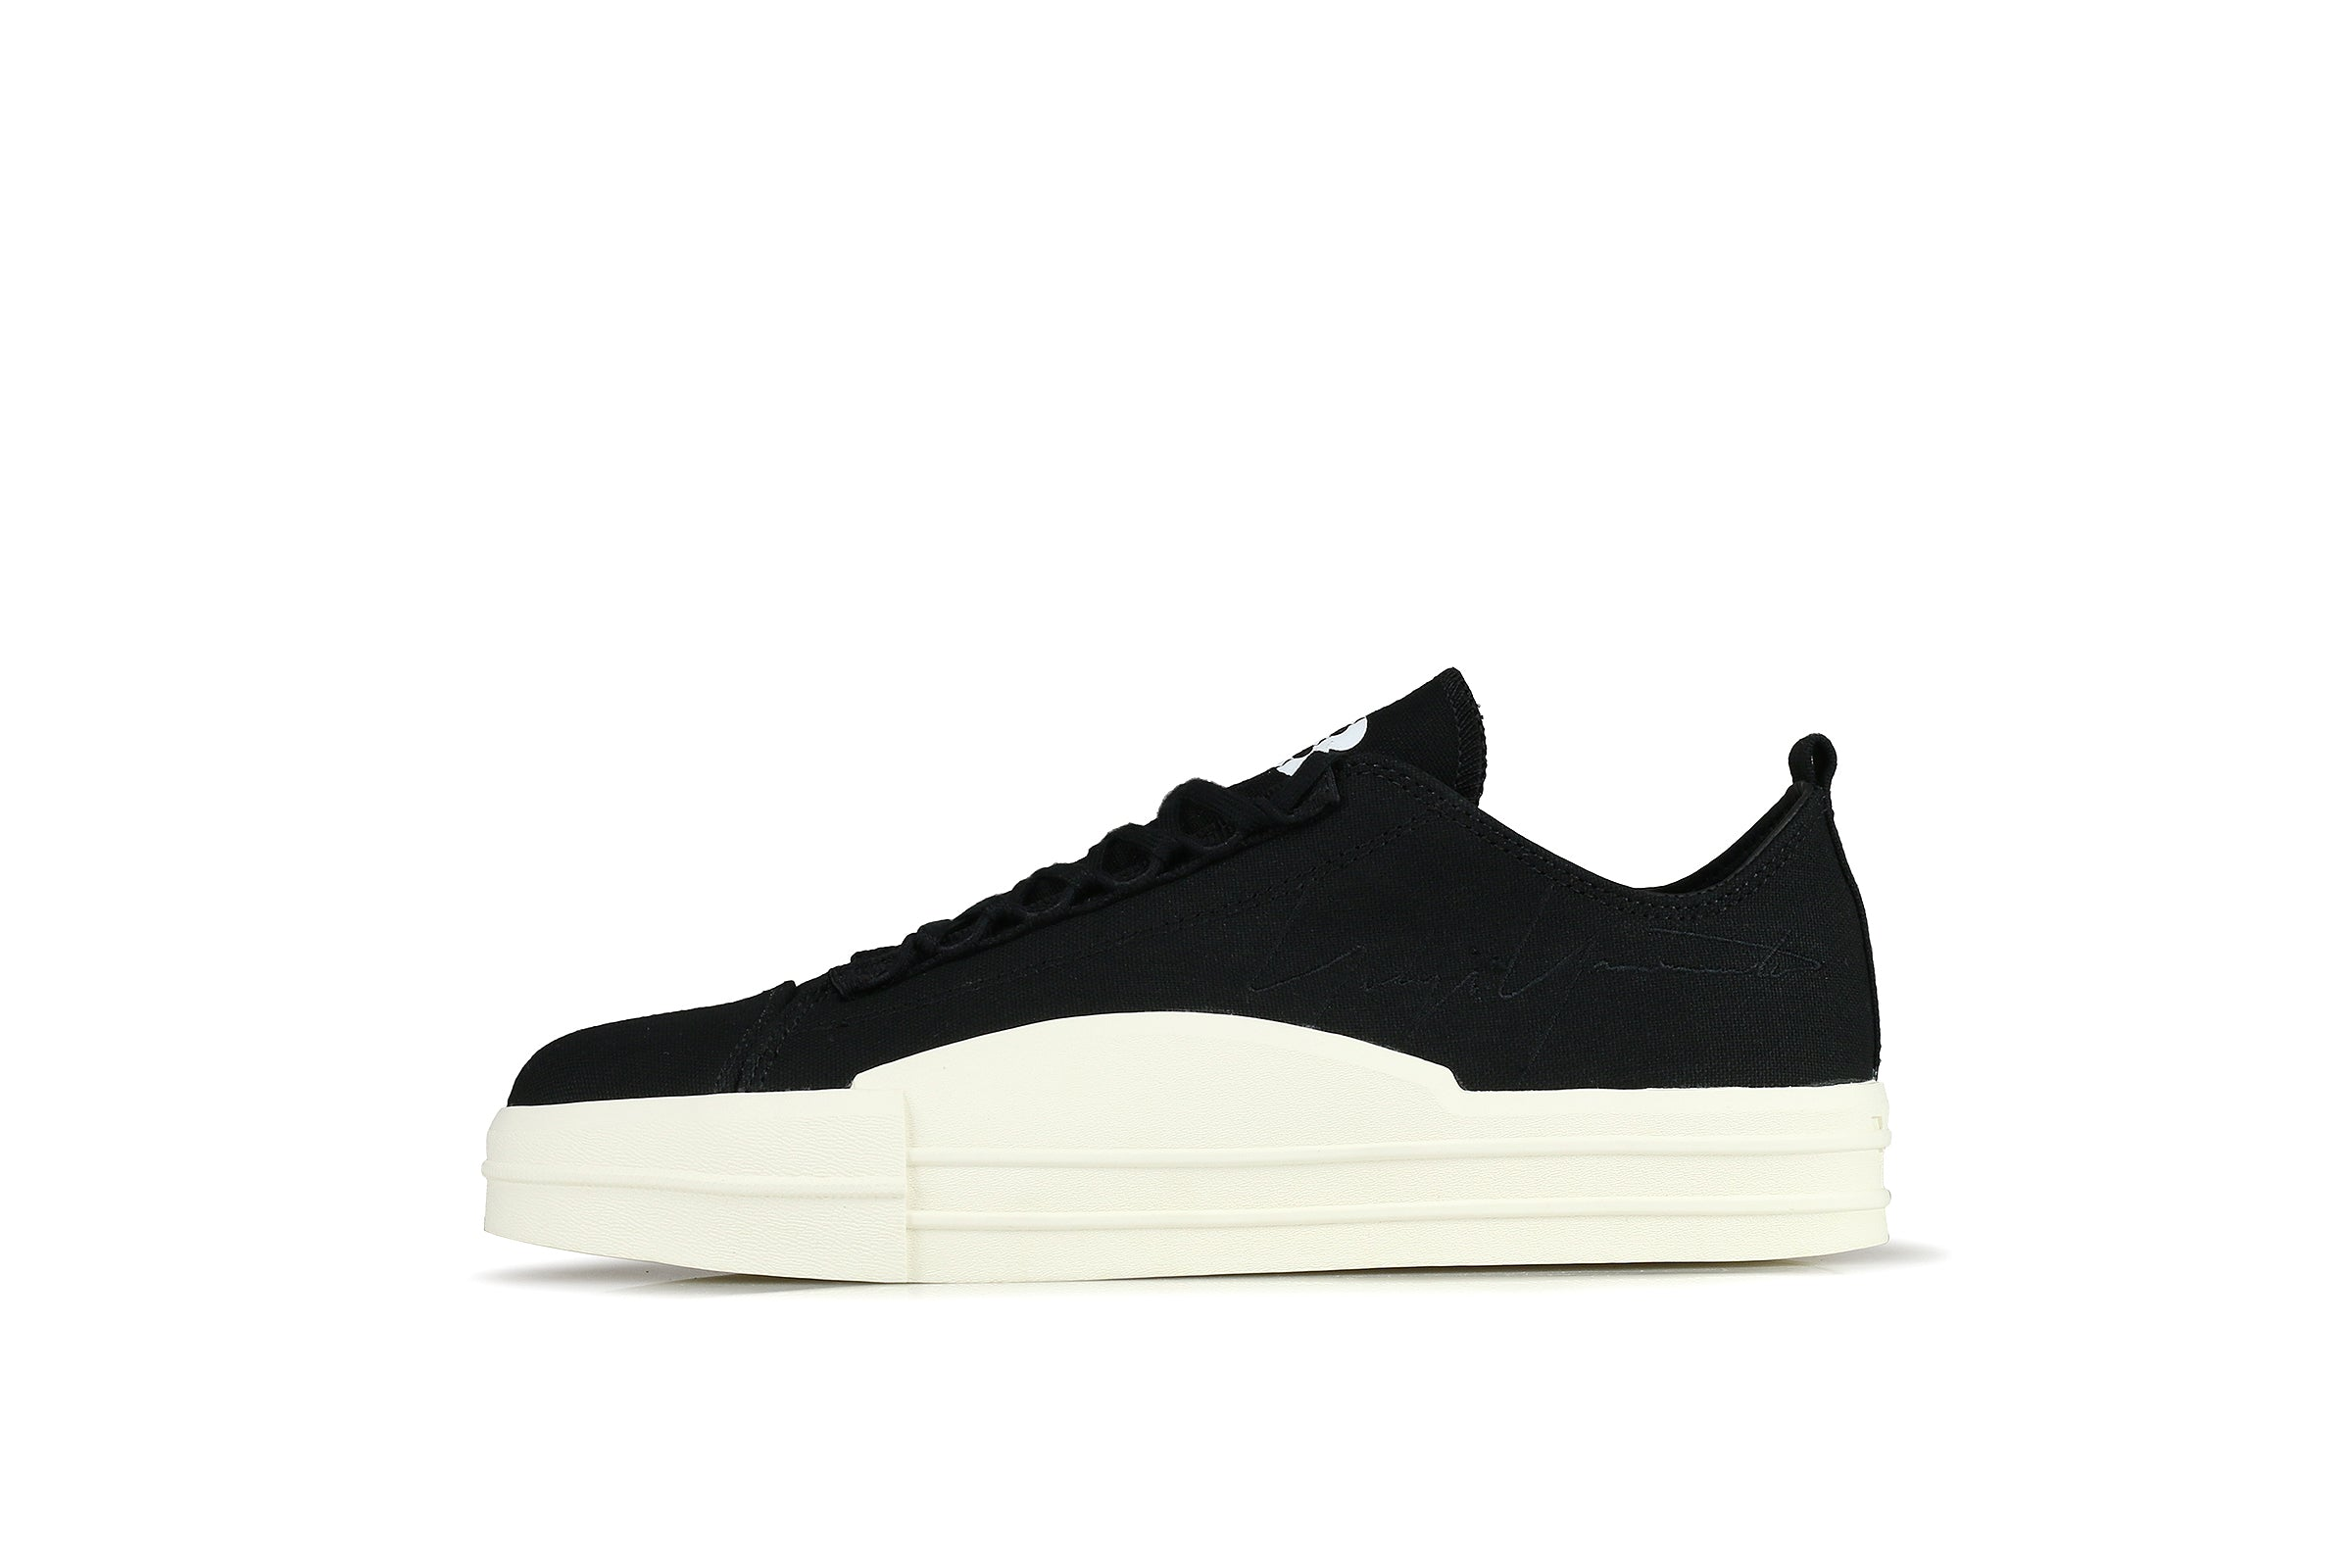 Adidas Y-3 Yuben Low